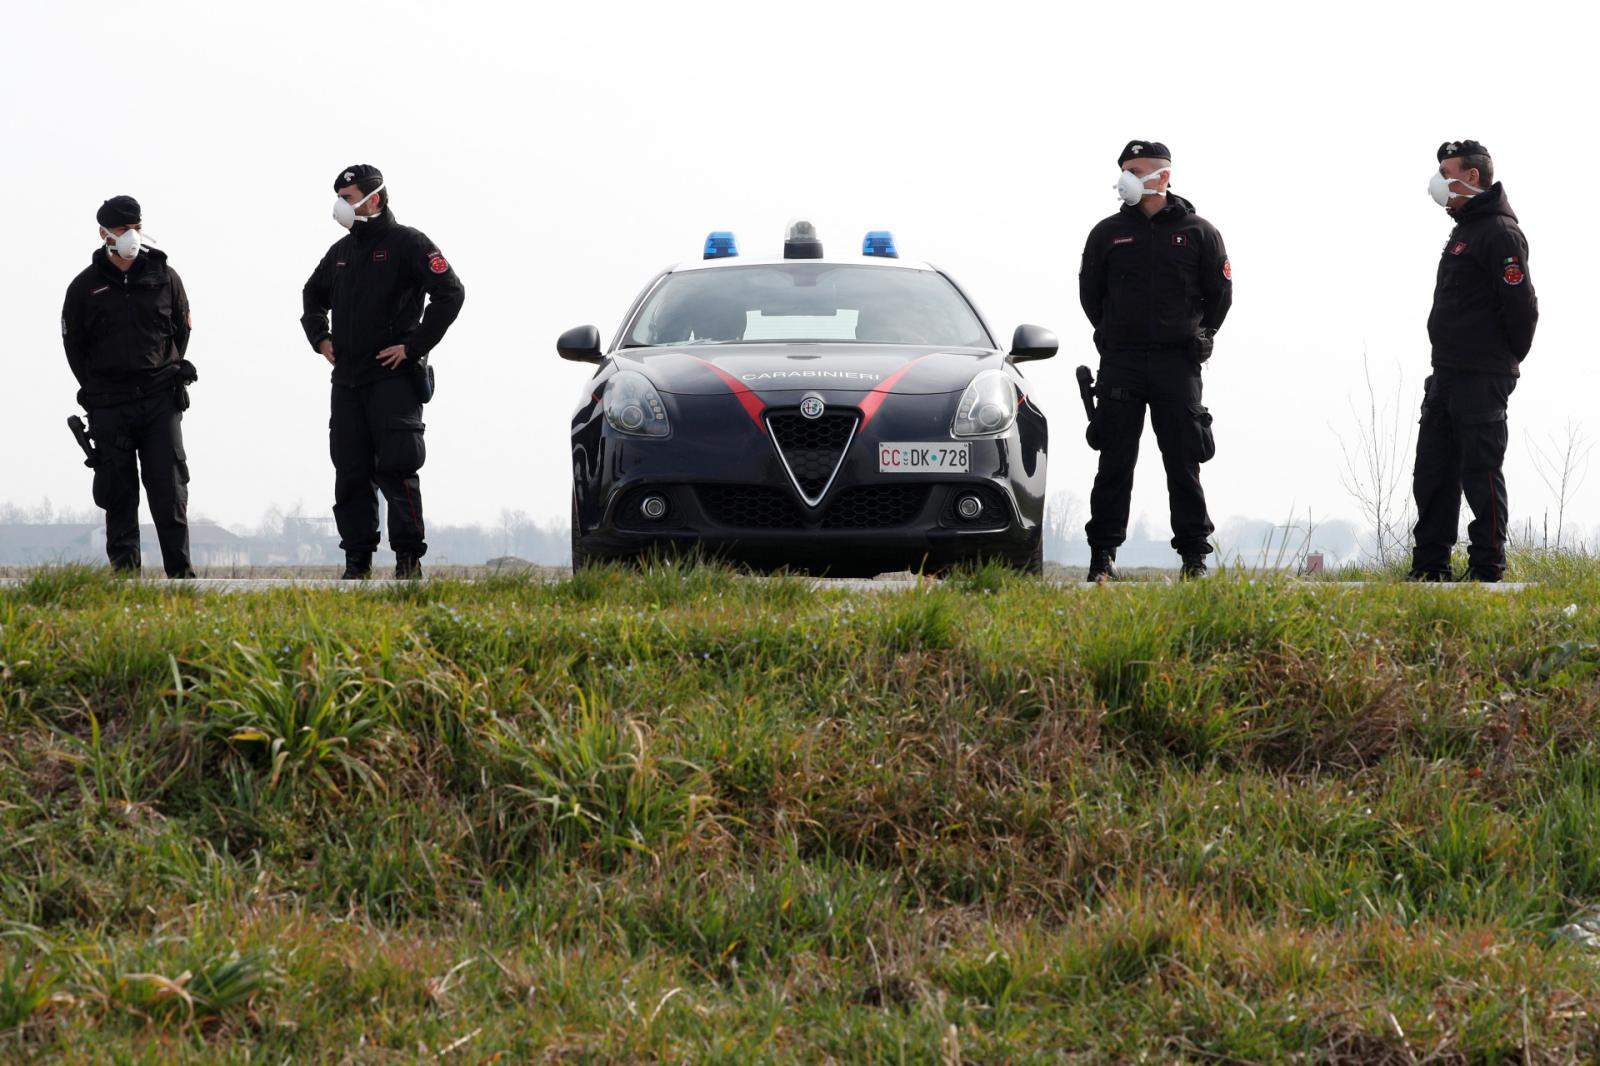 Crime & Quarantine: How the Pandemic is Squeezing Italian Crime Groups